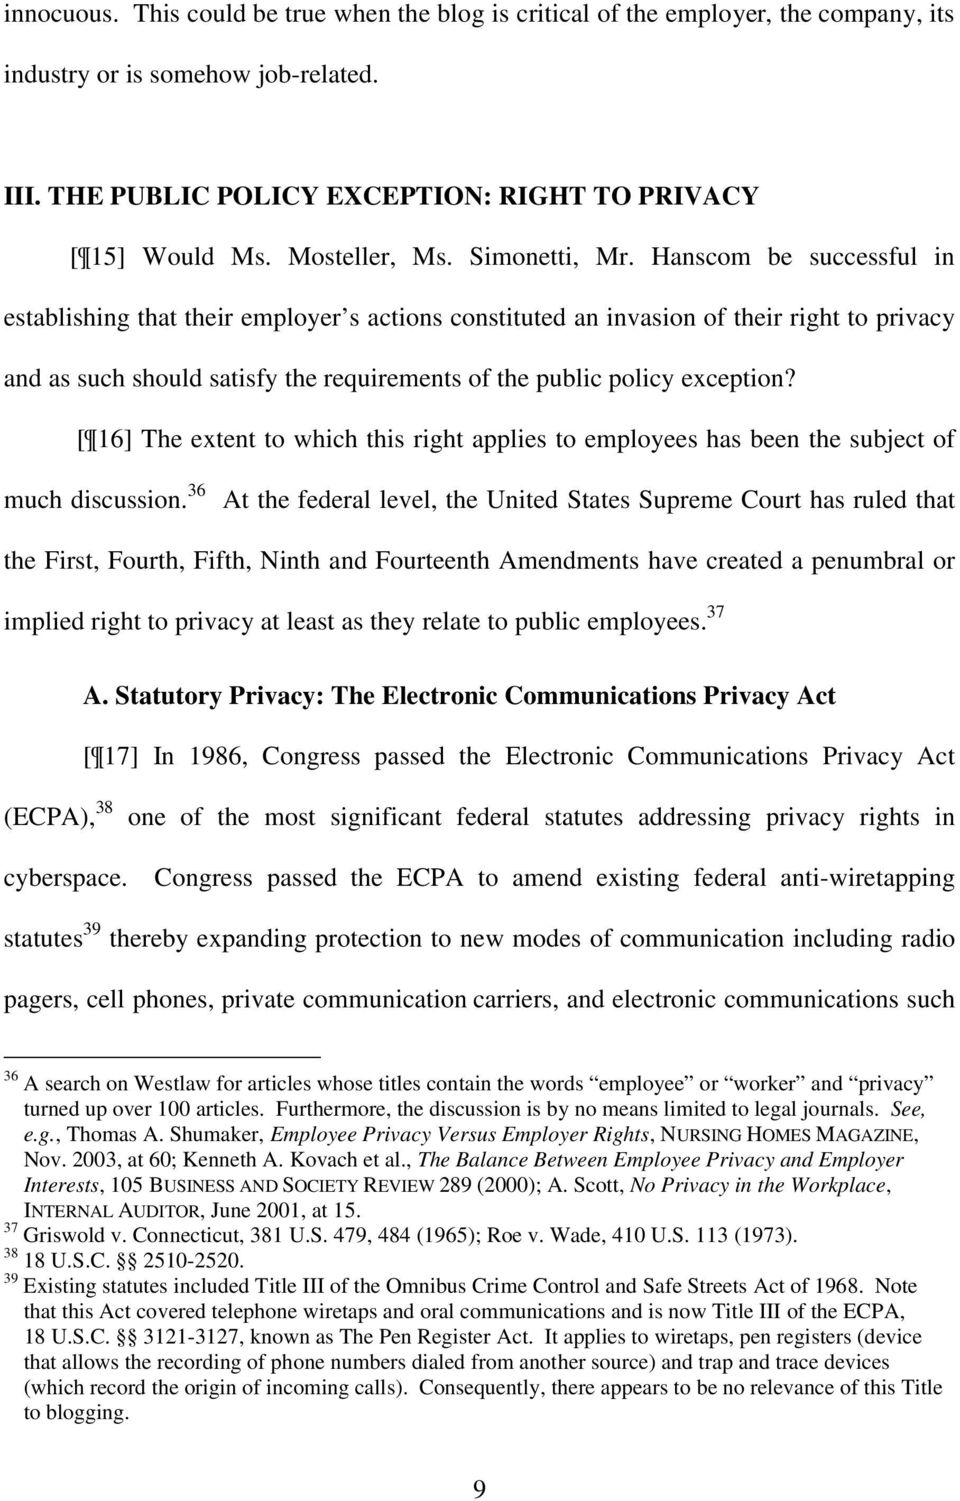 Hanscom be successful in establishing that their employer s actions constituted an invasion of their right to privacy and as such should satisfy the requirements of the public policy exception?